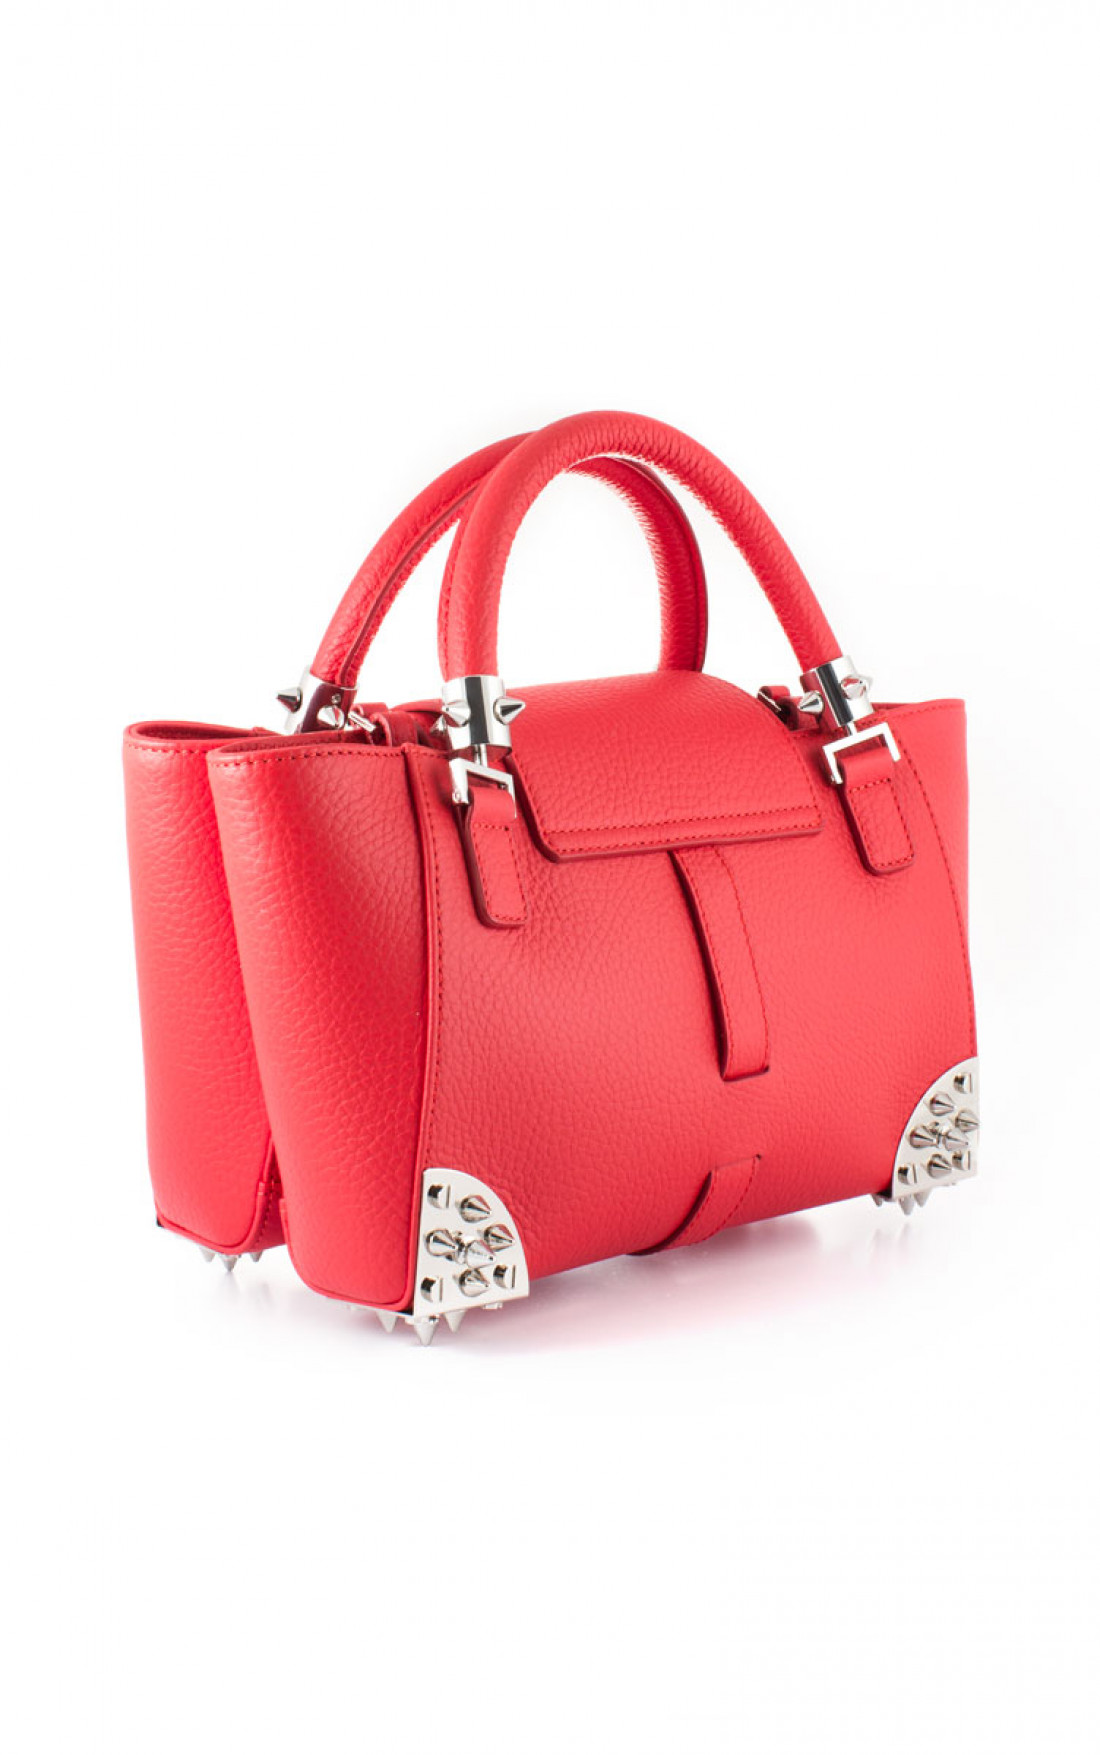 Philipp Plein Handbags | Womens Charlotte Red Handbag | Womens ...